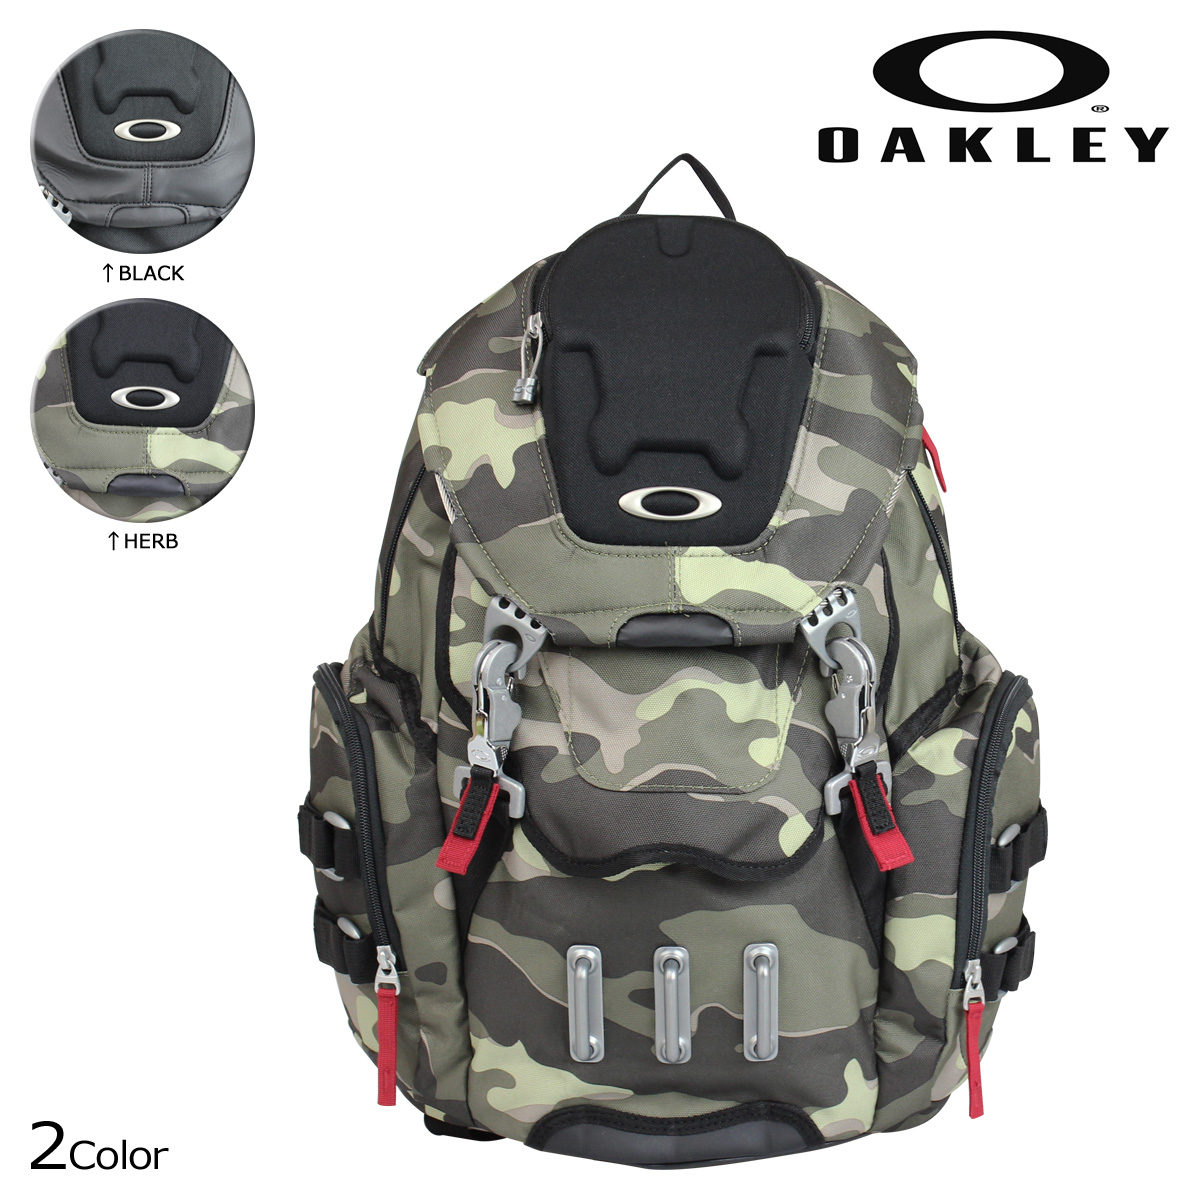 Oakley Oakley mens Backpack Rucksack 92356 BATHROOM SINK [9/14 new in stock]